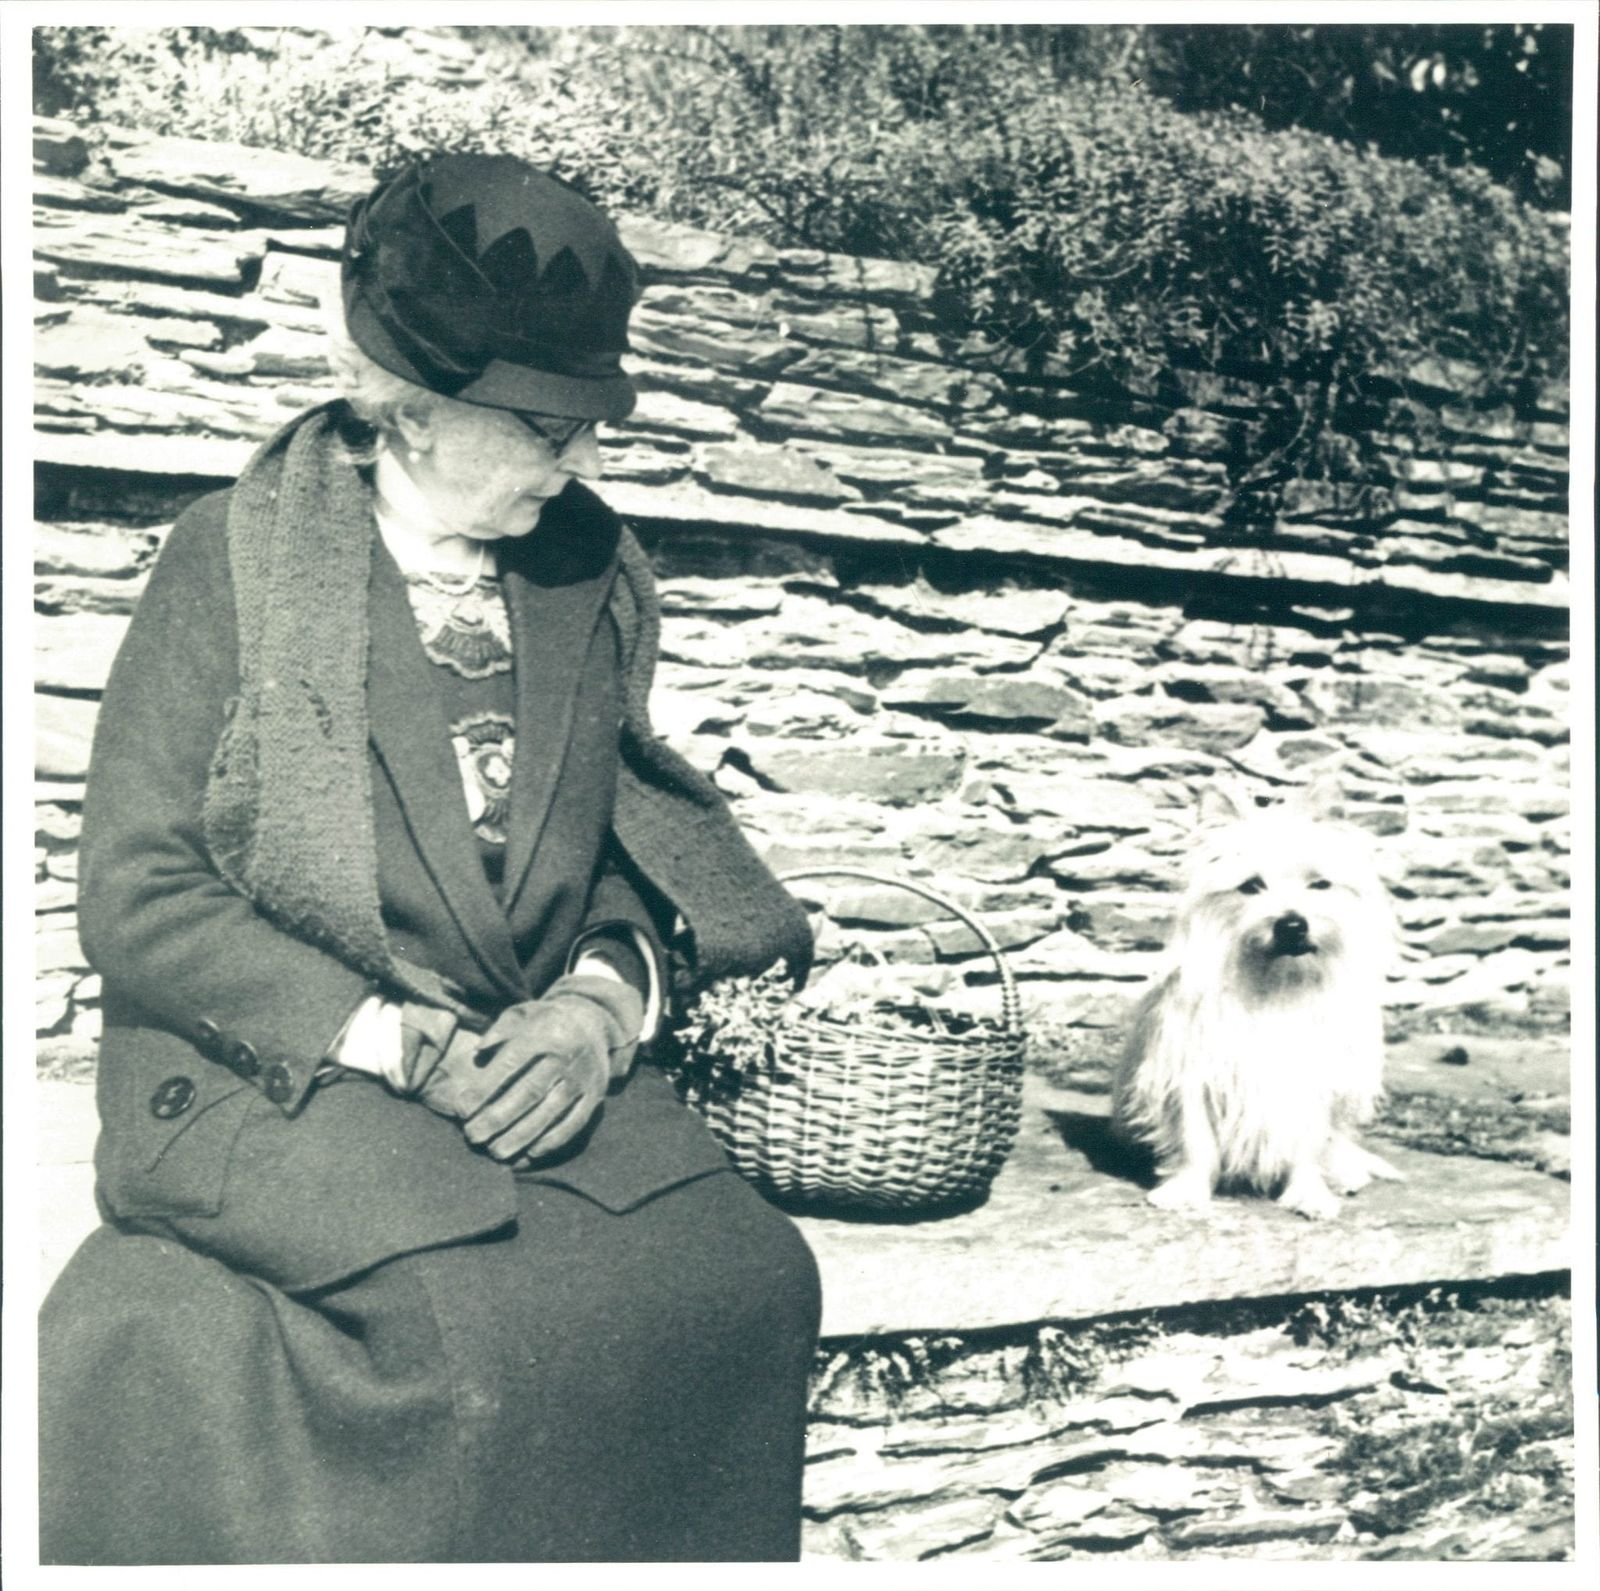 Mrs Portman with her dog, we celebrate the history of women at Hestercombe